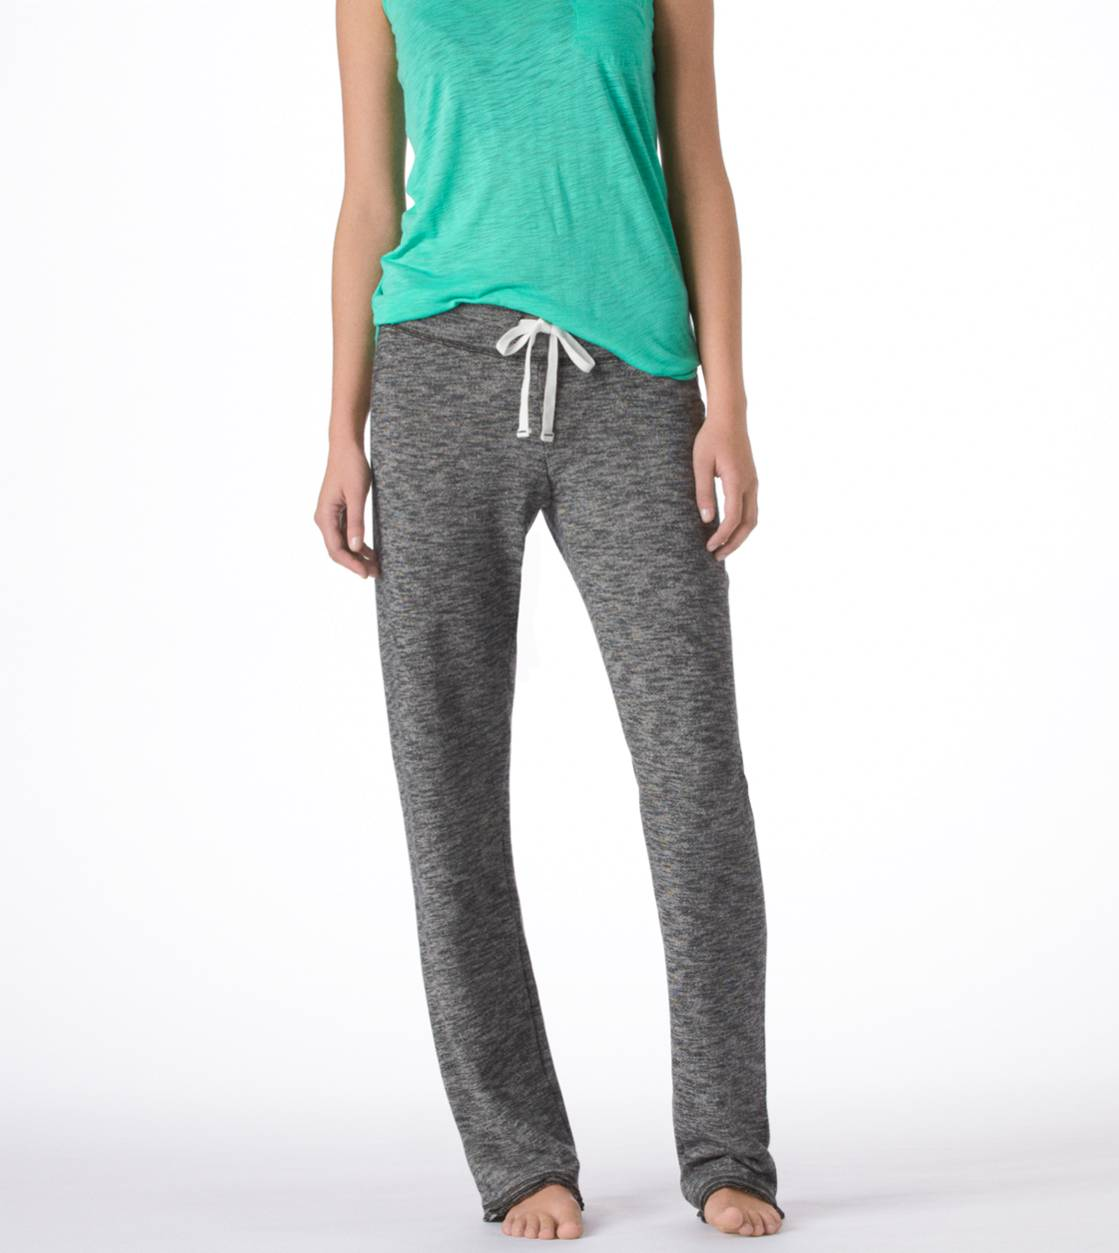 Charcoal Heather Aerie Classic Sweatpant